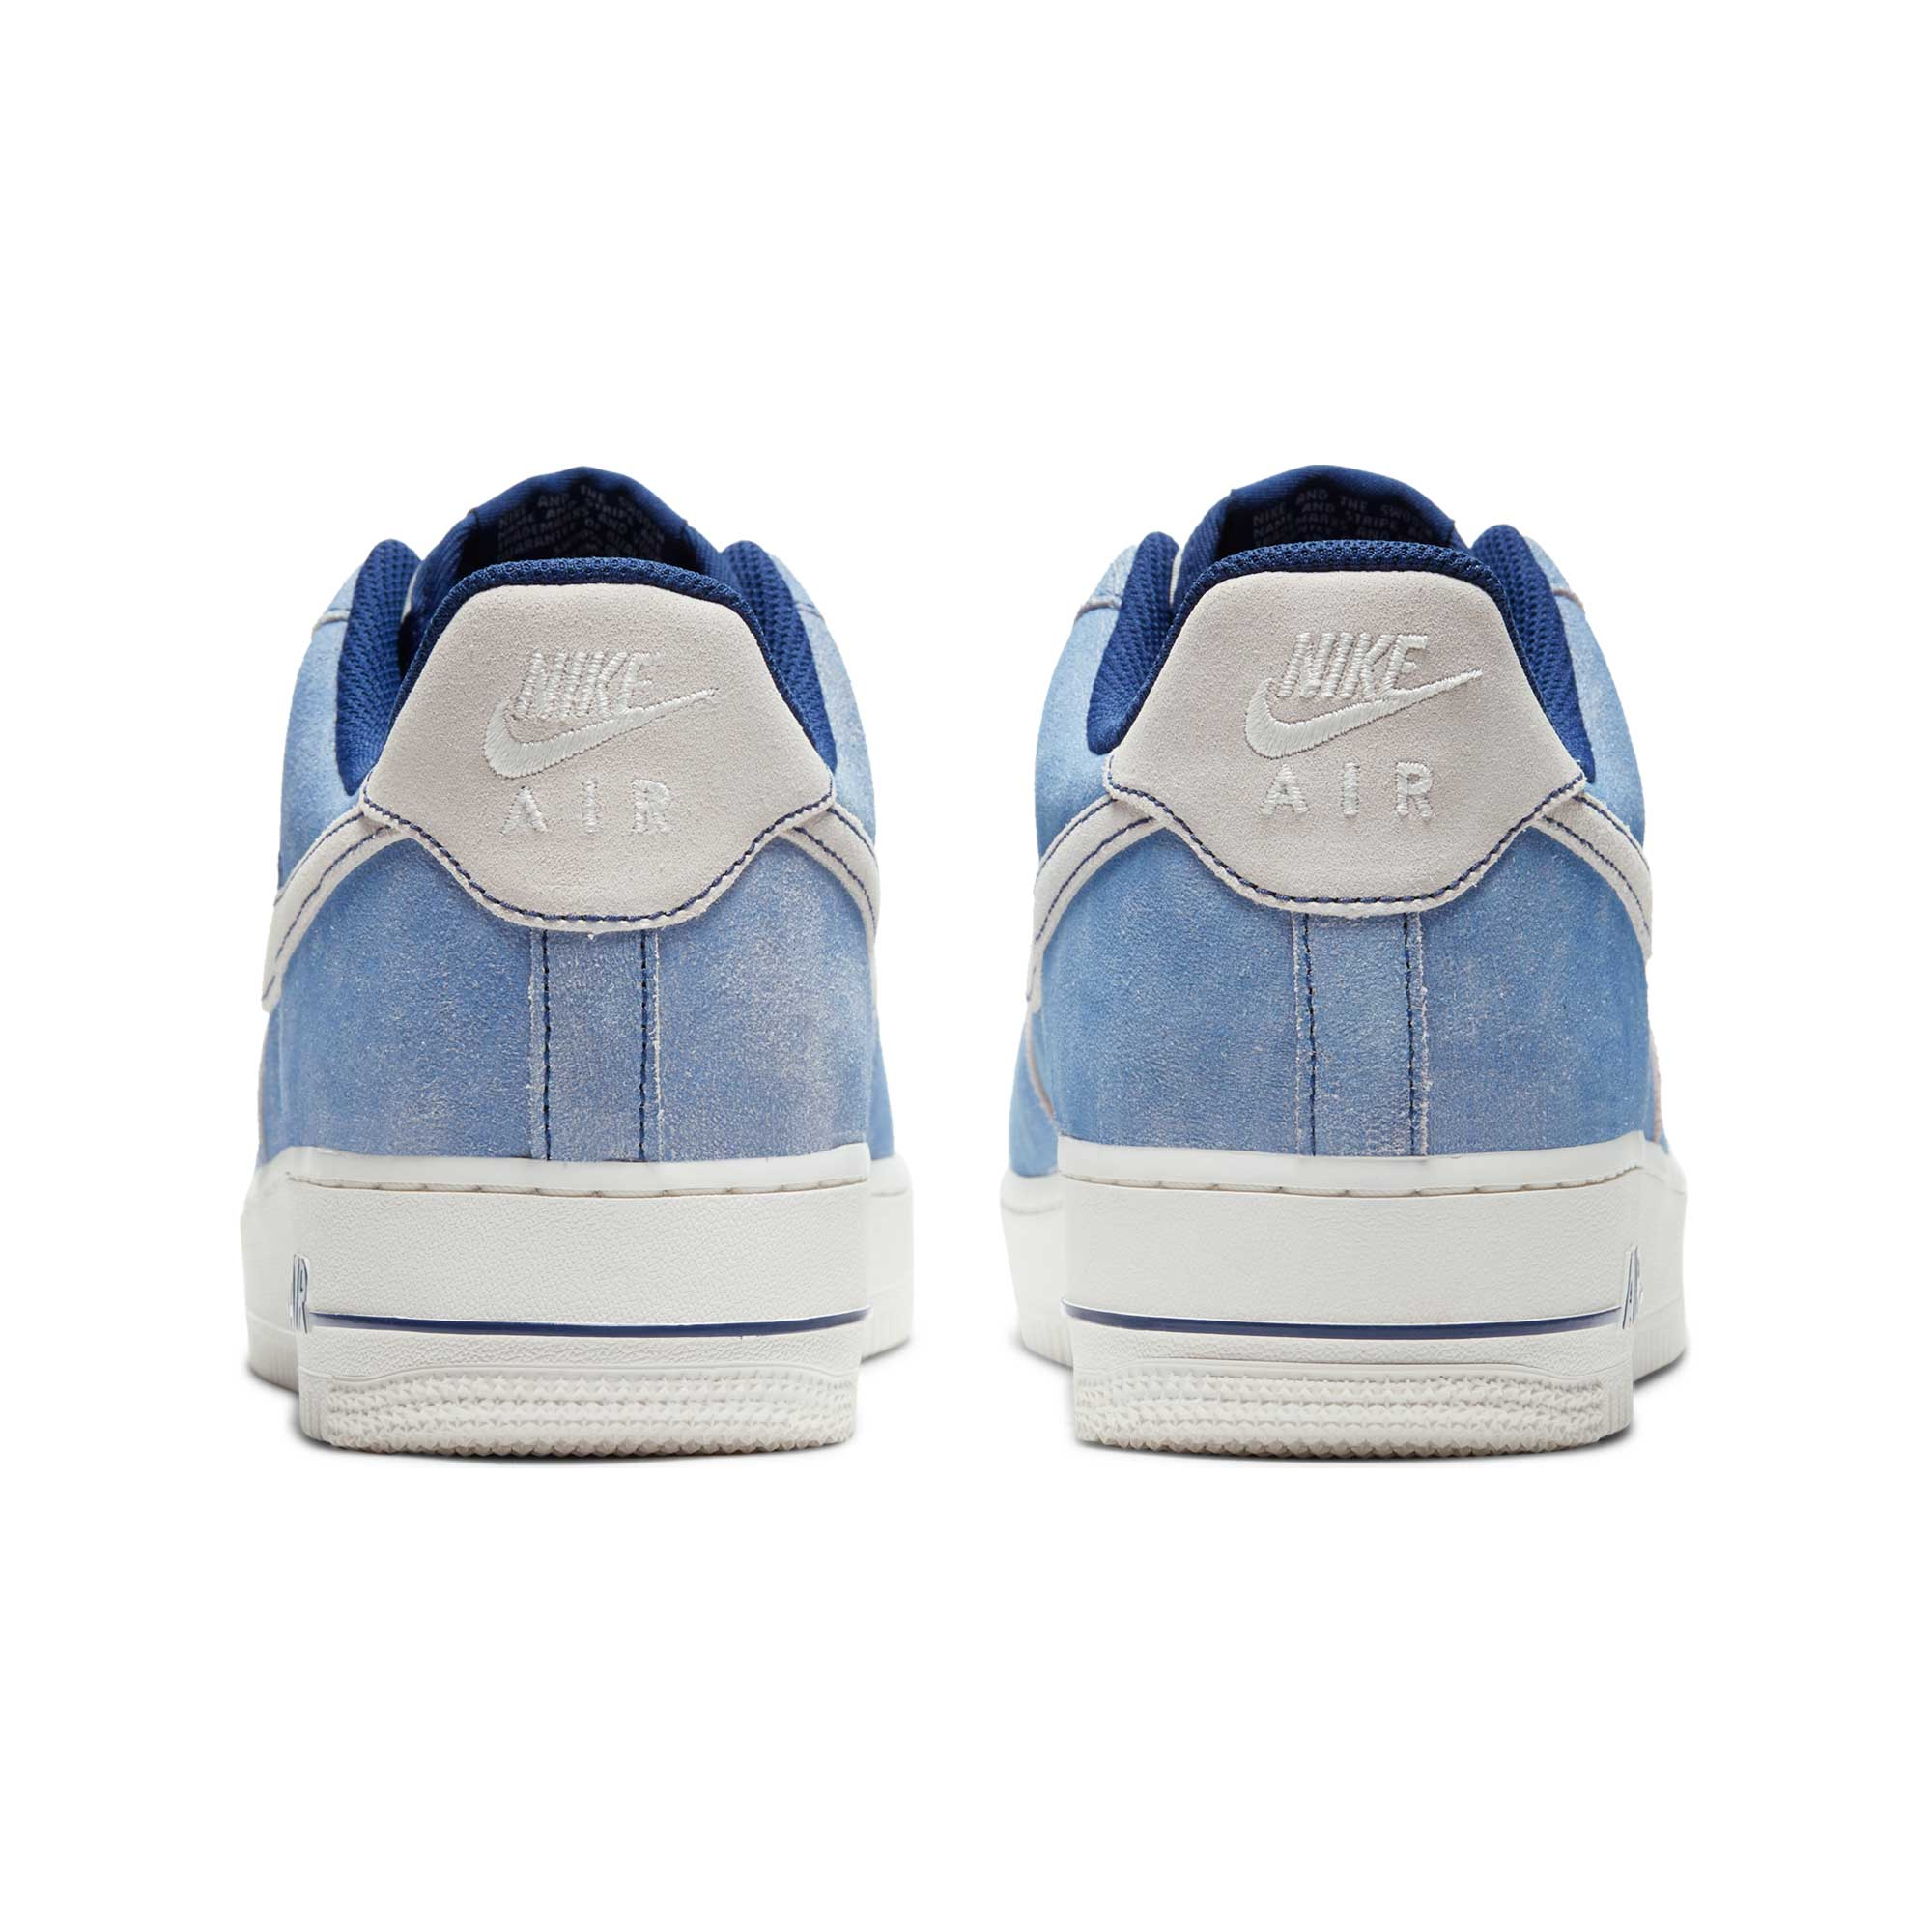 Air Force 1 07 LV8 DH0265-400 Blue Void/Sail